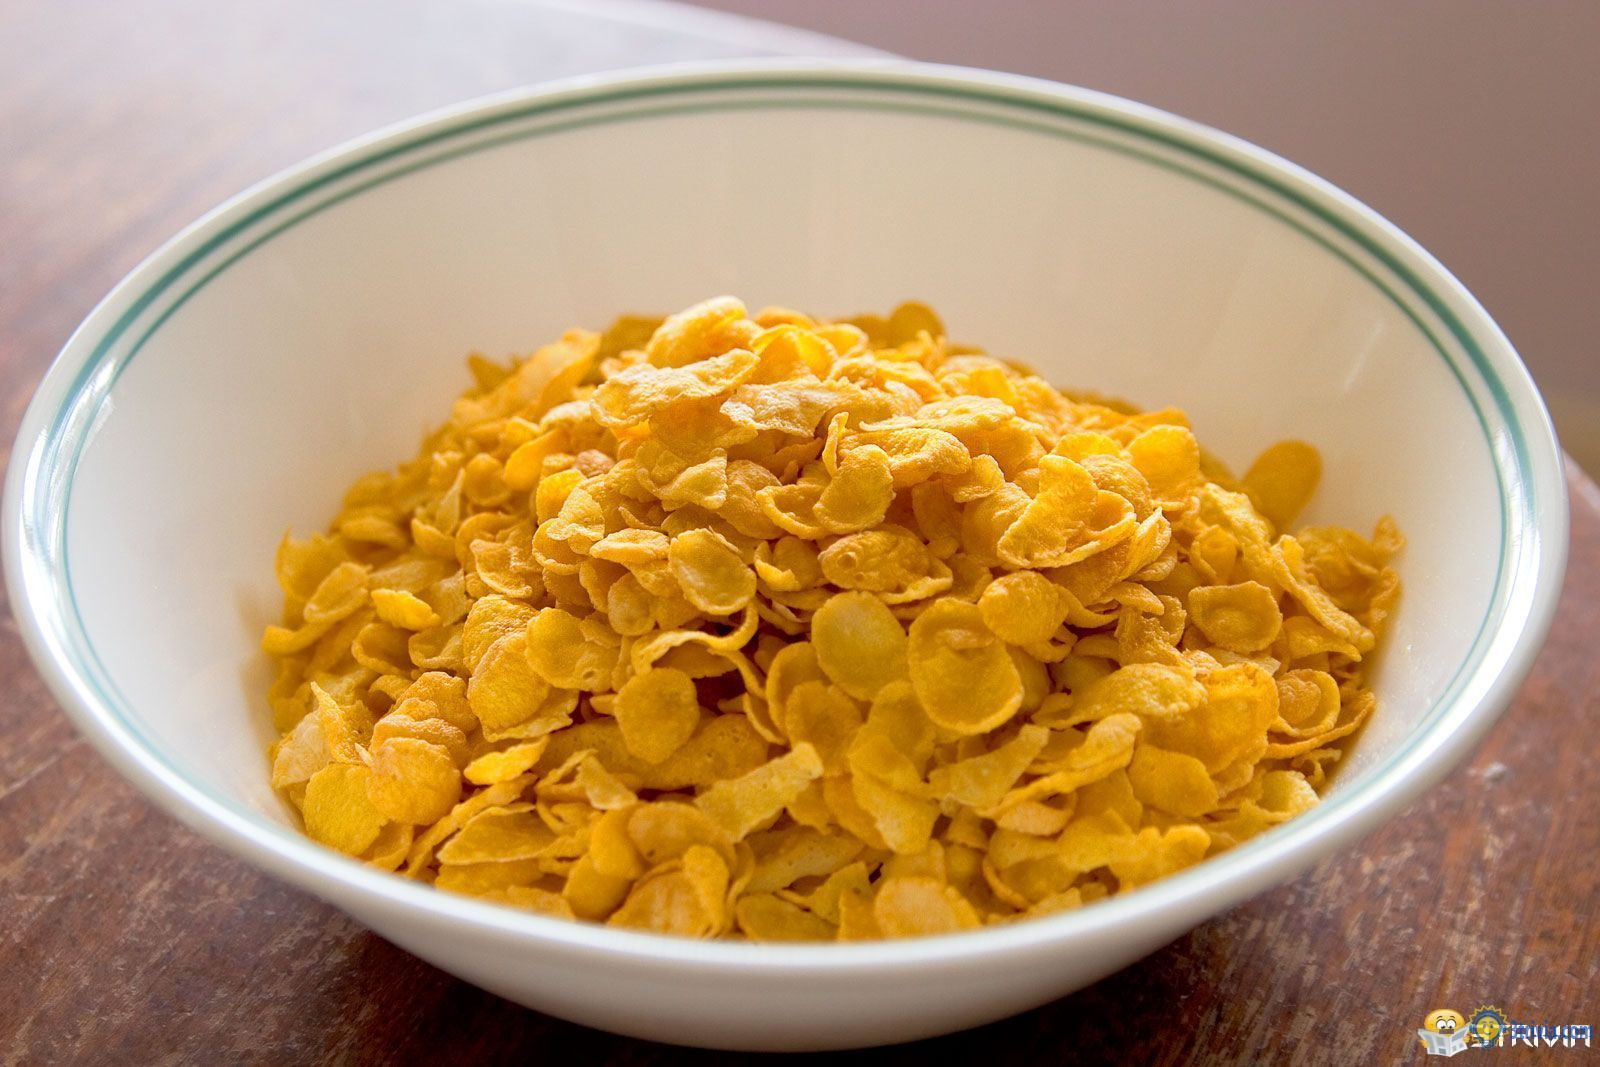 Corn trivia:The reason for inventing corn flakes is to abstain from sex.